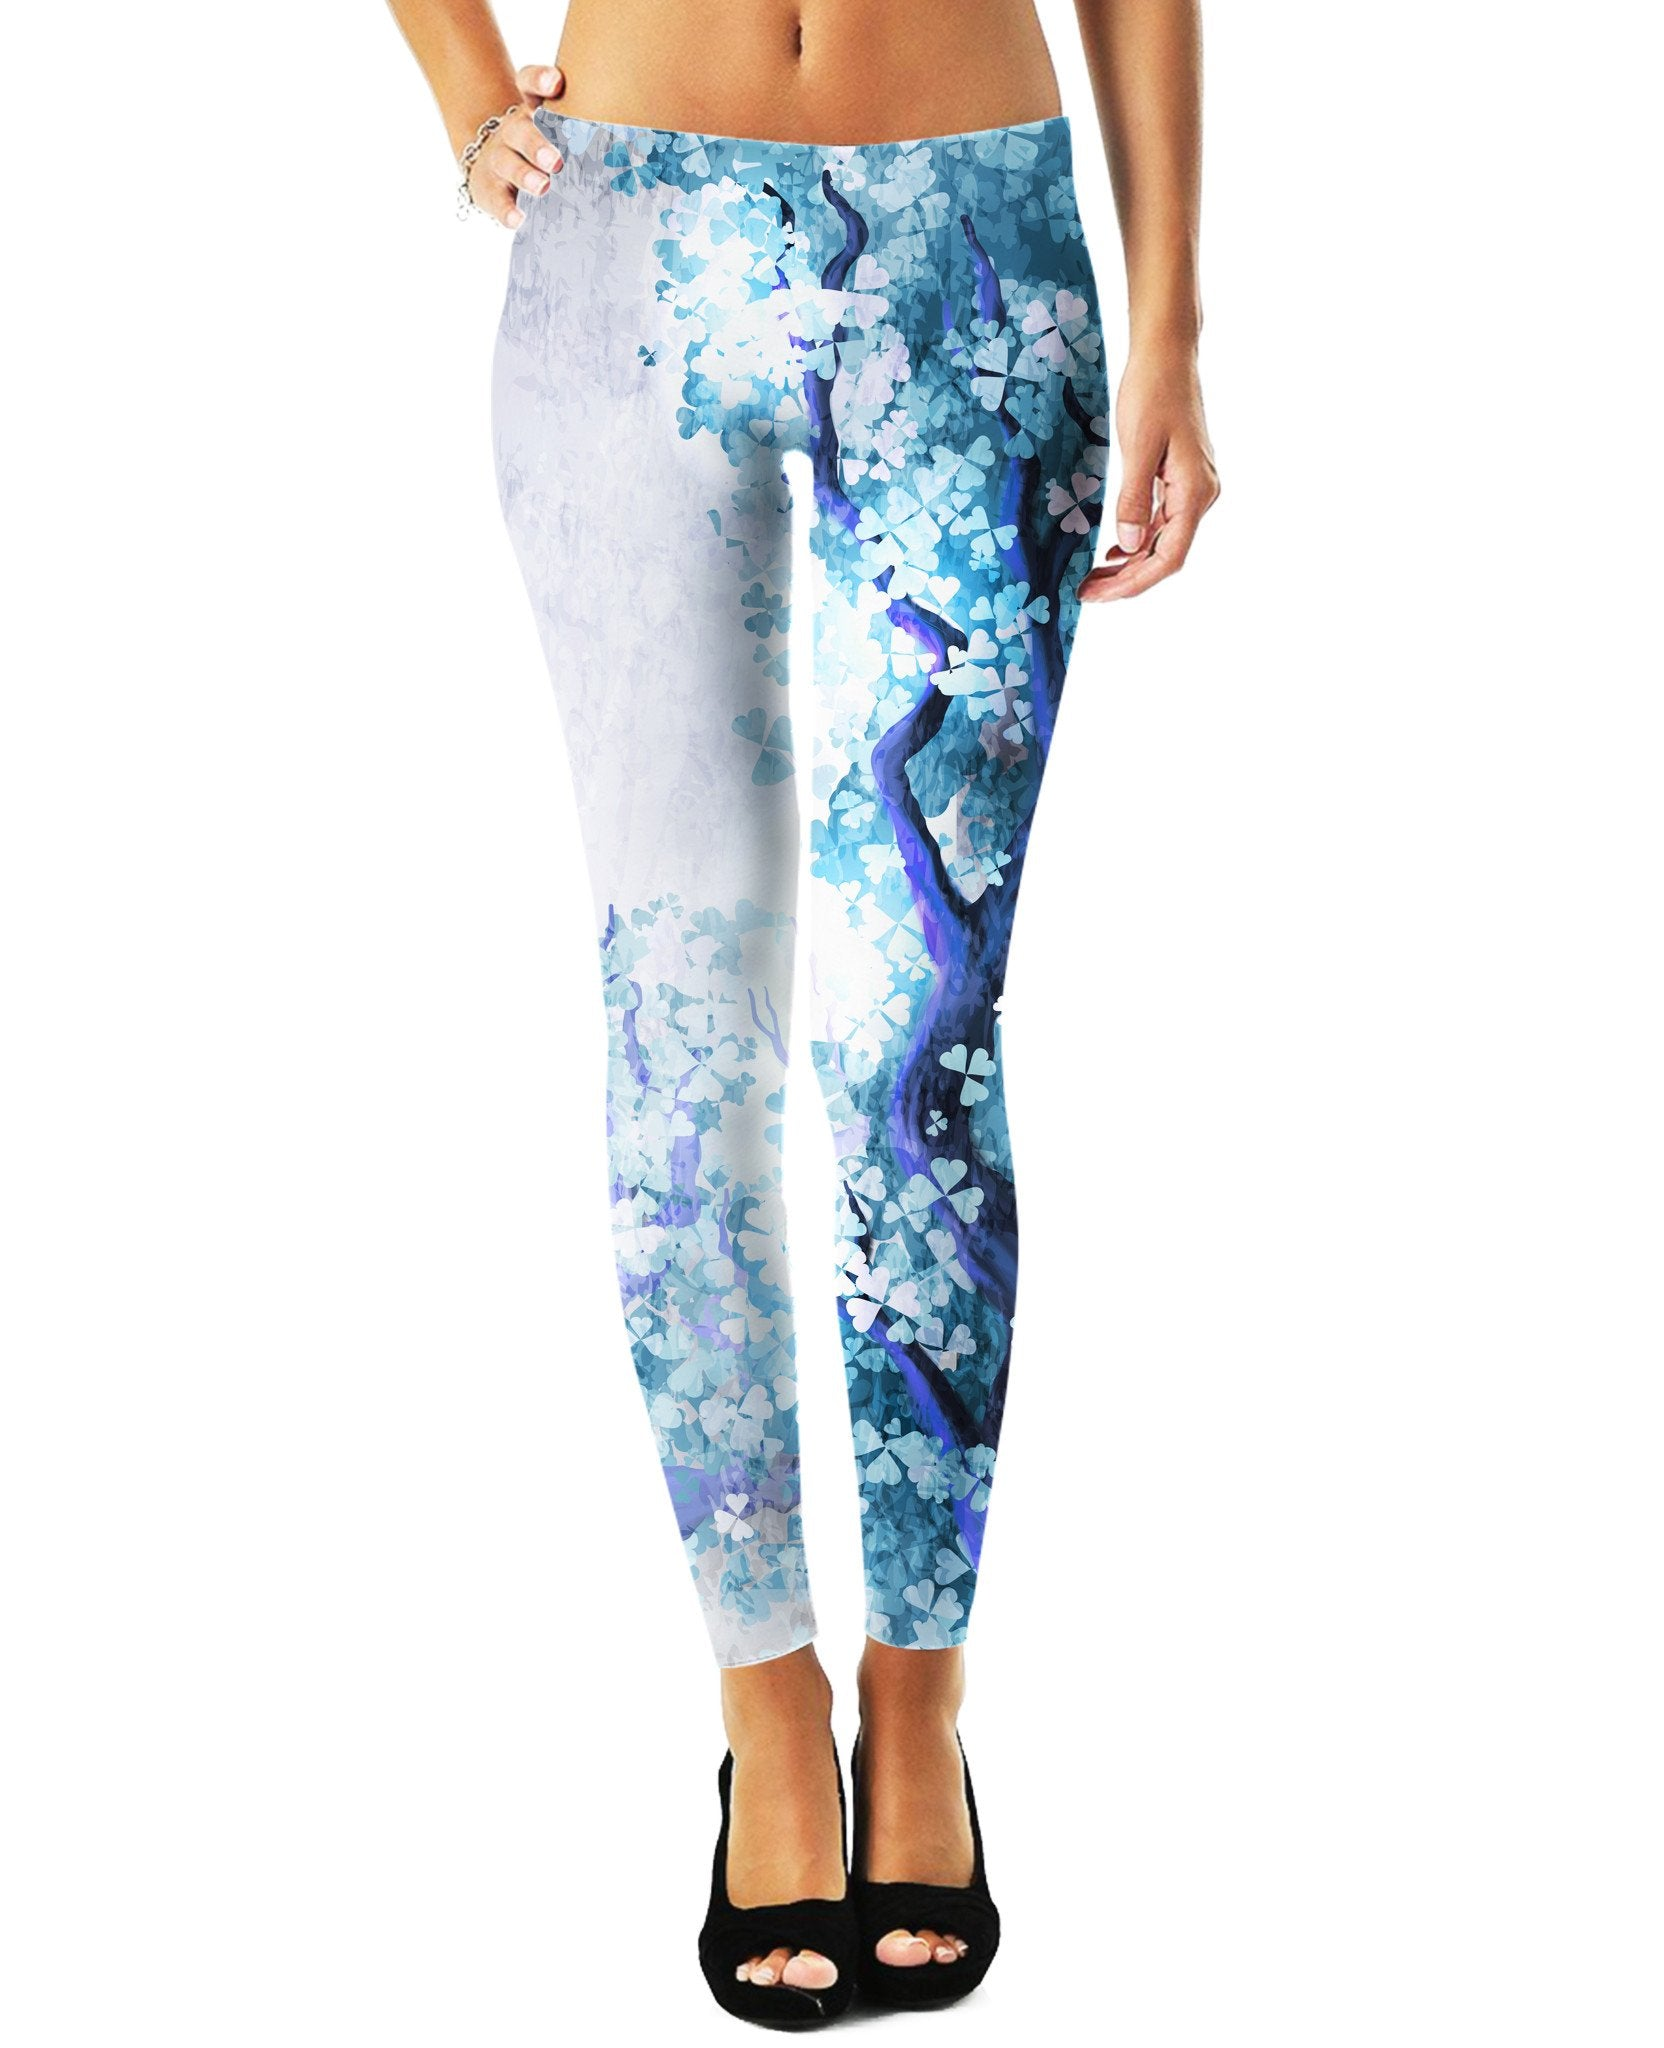 Blossom Leaves Leggings - TShirtsRUS.co